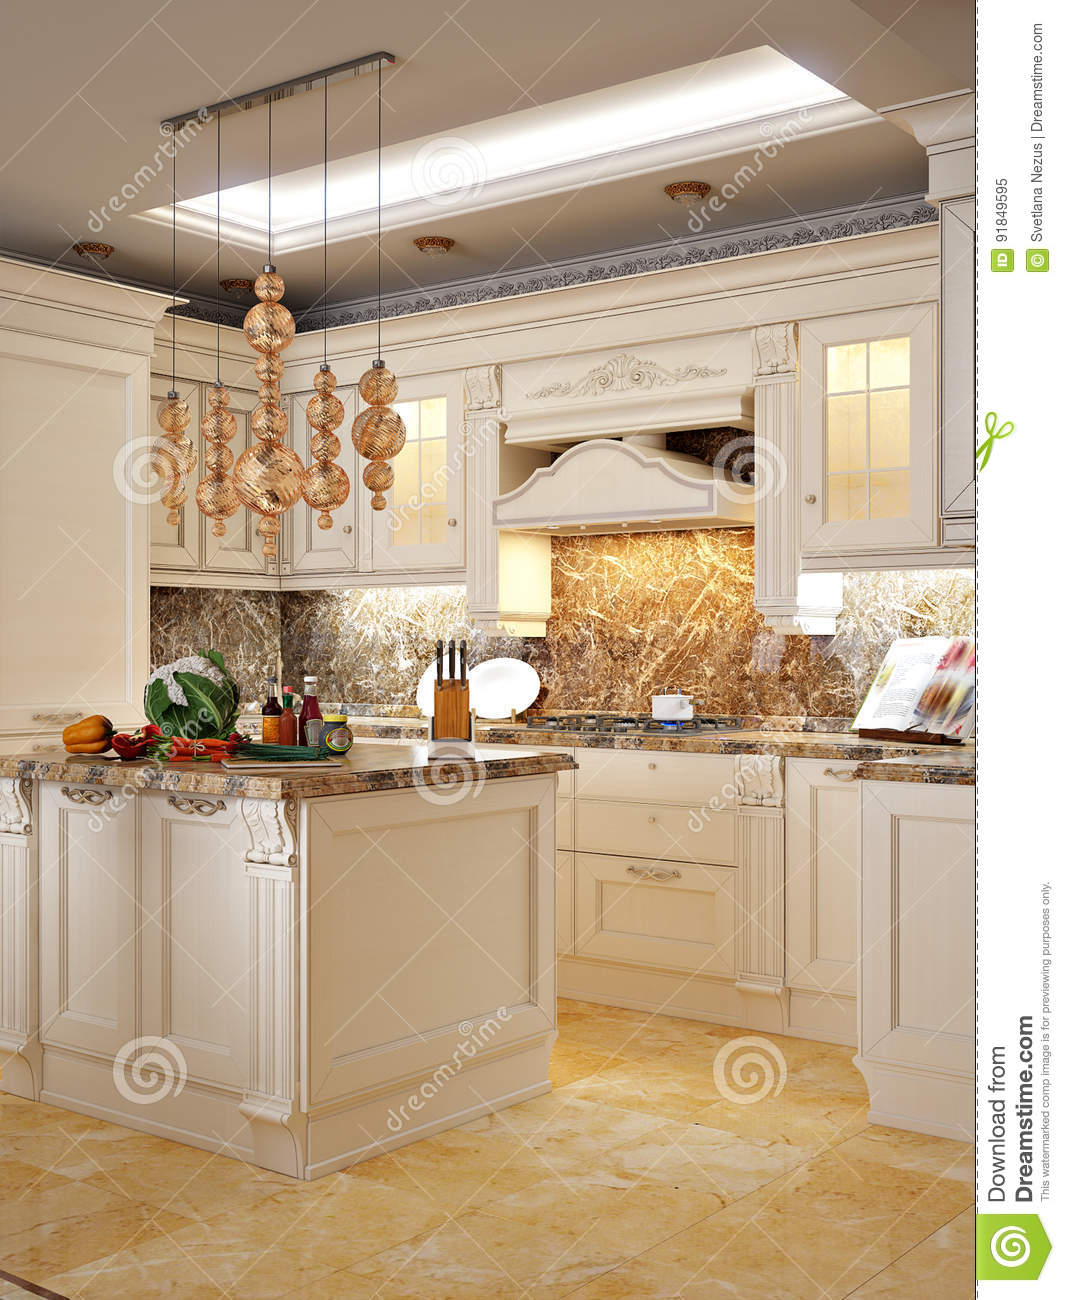 Luxury Kitchen Room Interior Bright Wooden Stock Vector: Luxurious Classic Baroque Kitchen And Dining Room Stock